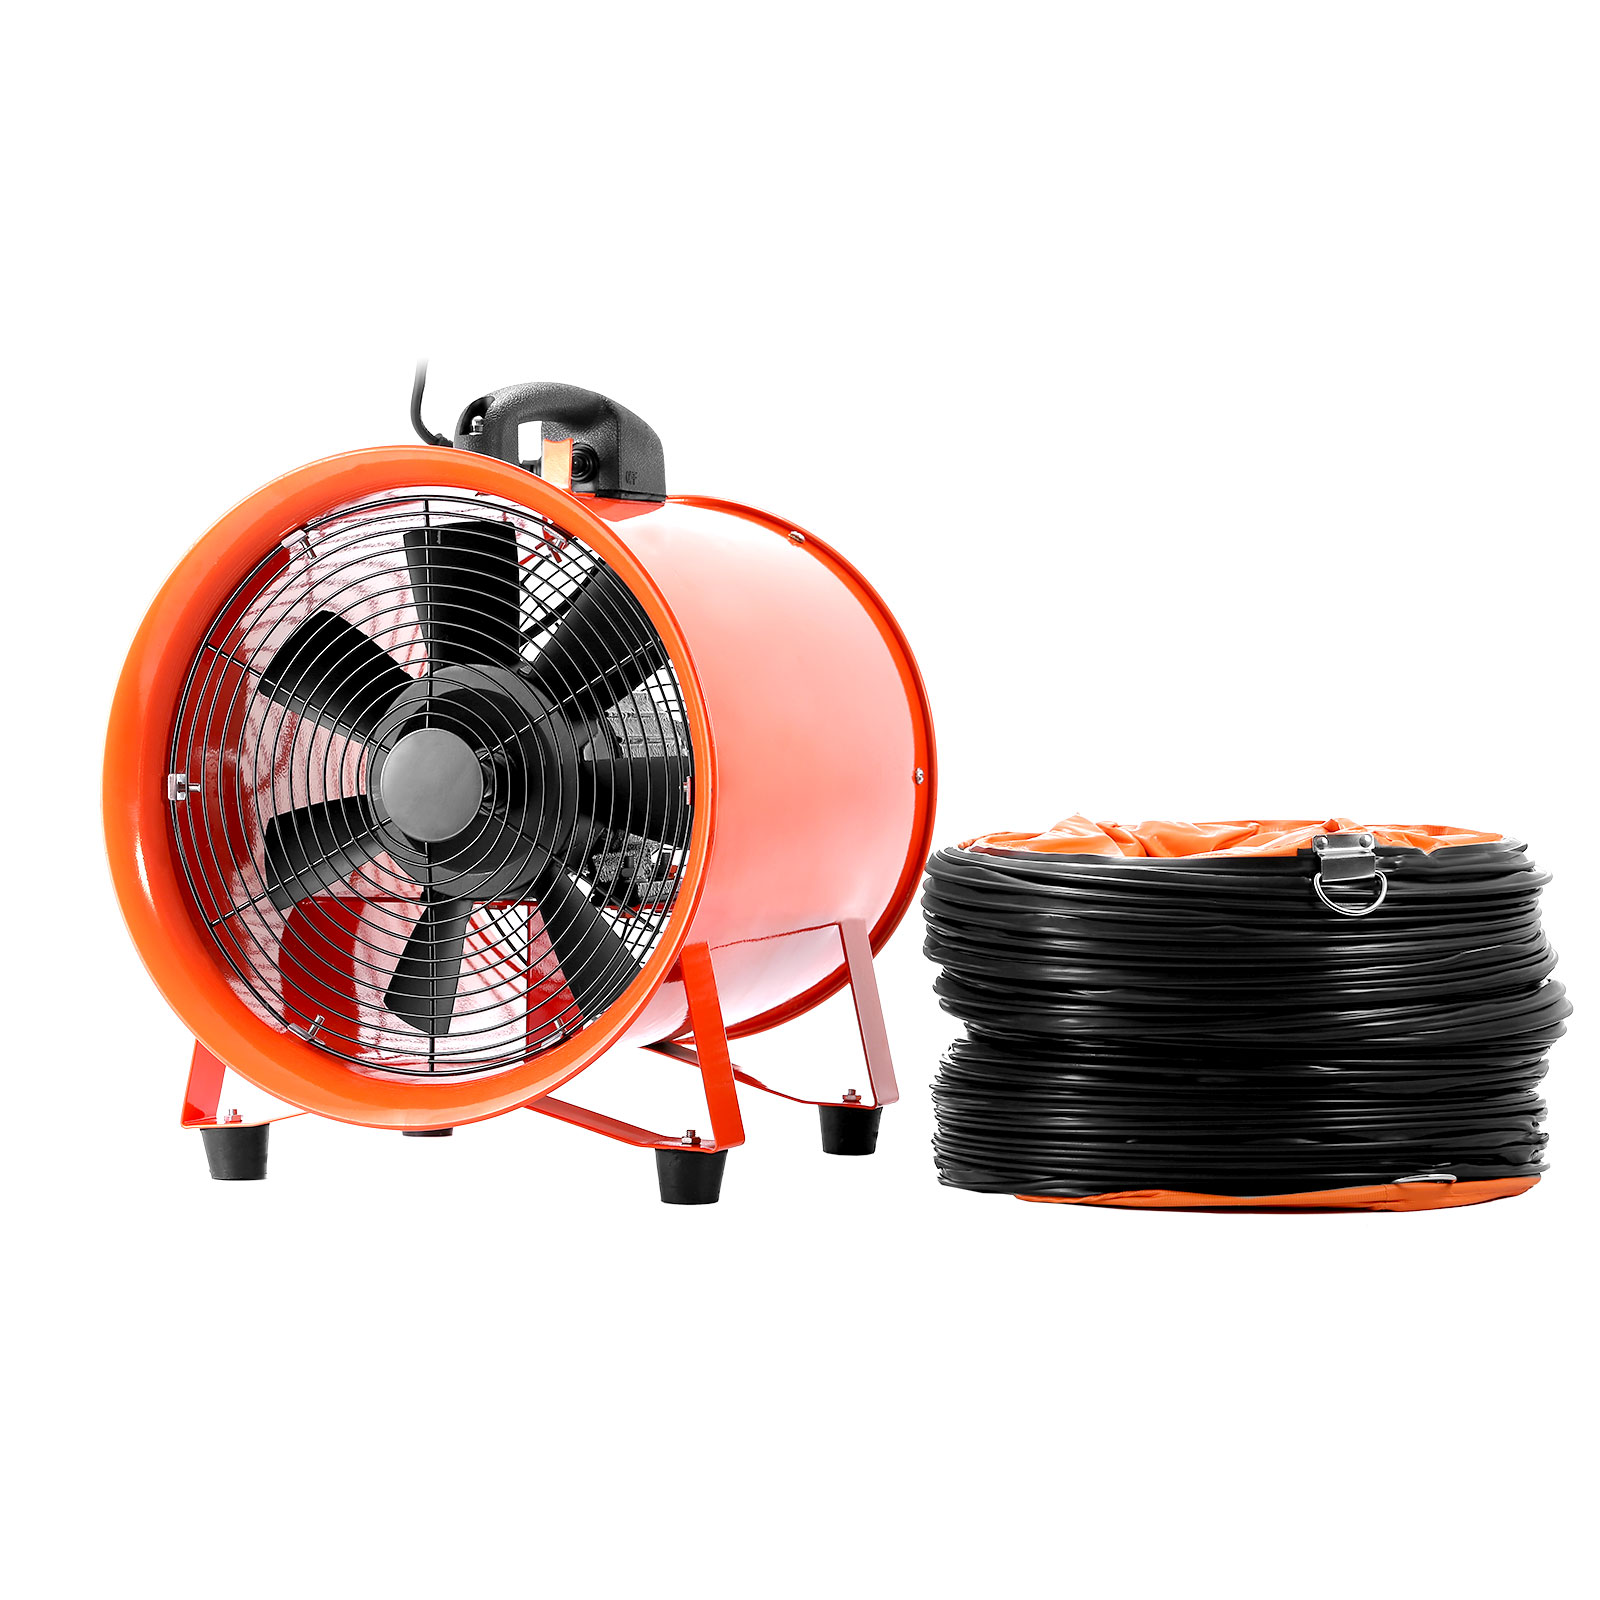 Portable Extractor Fan Bestequip Utility Blower 12 Inch 7hp 2295 Cfm 3300 Rpm Portable Ventilator High Velocity Utility Blower Fan New Style Stand Ventilator Fume